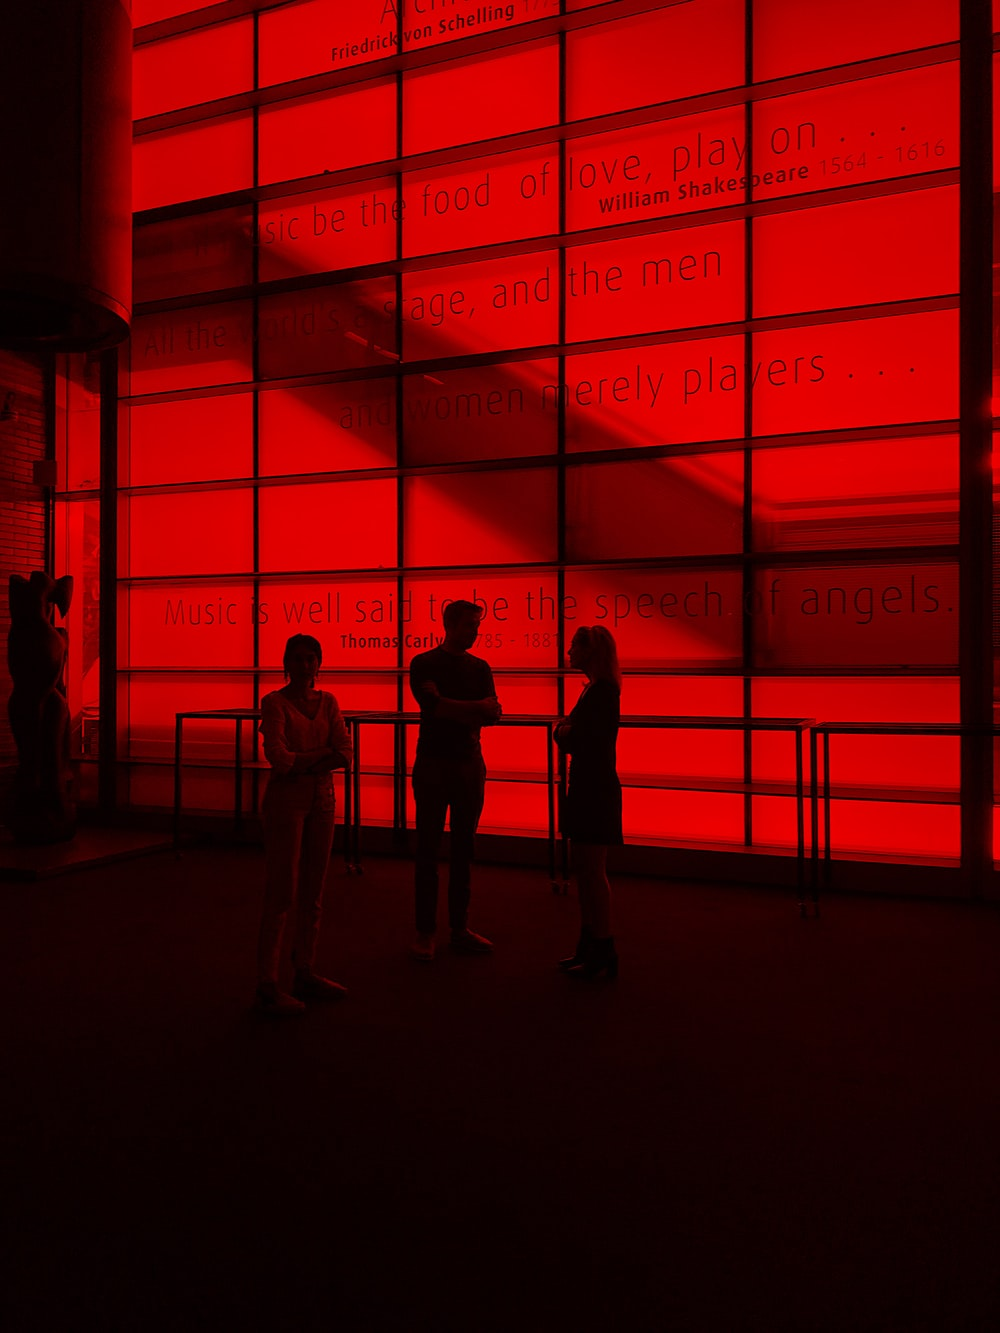 silhouette photography of three people inside a building